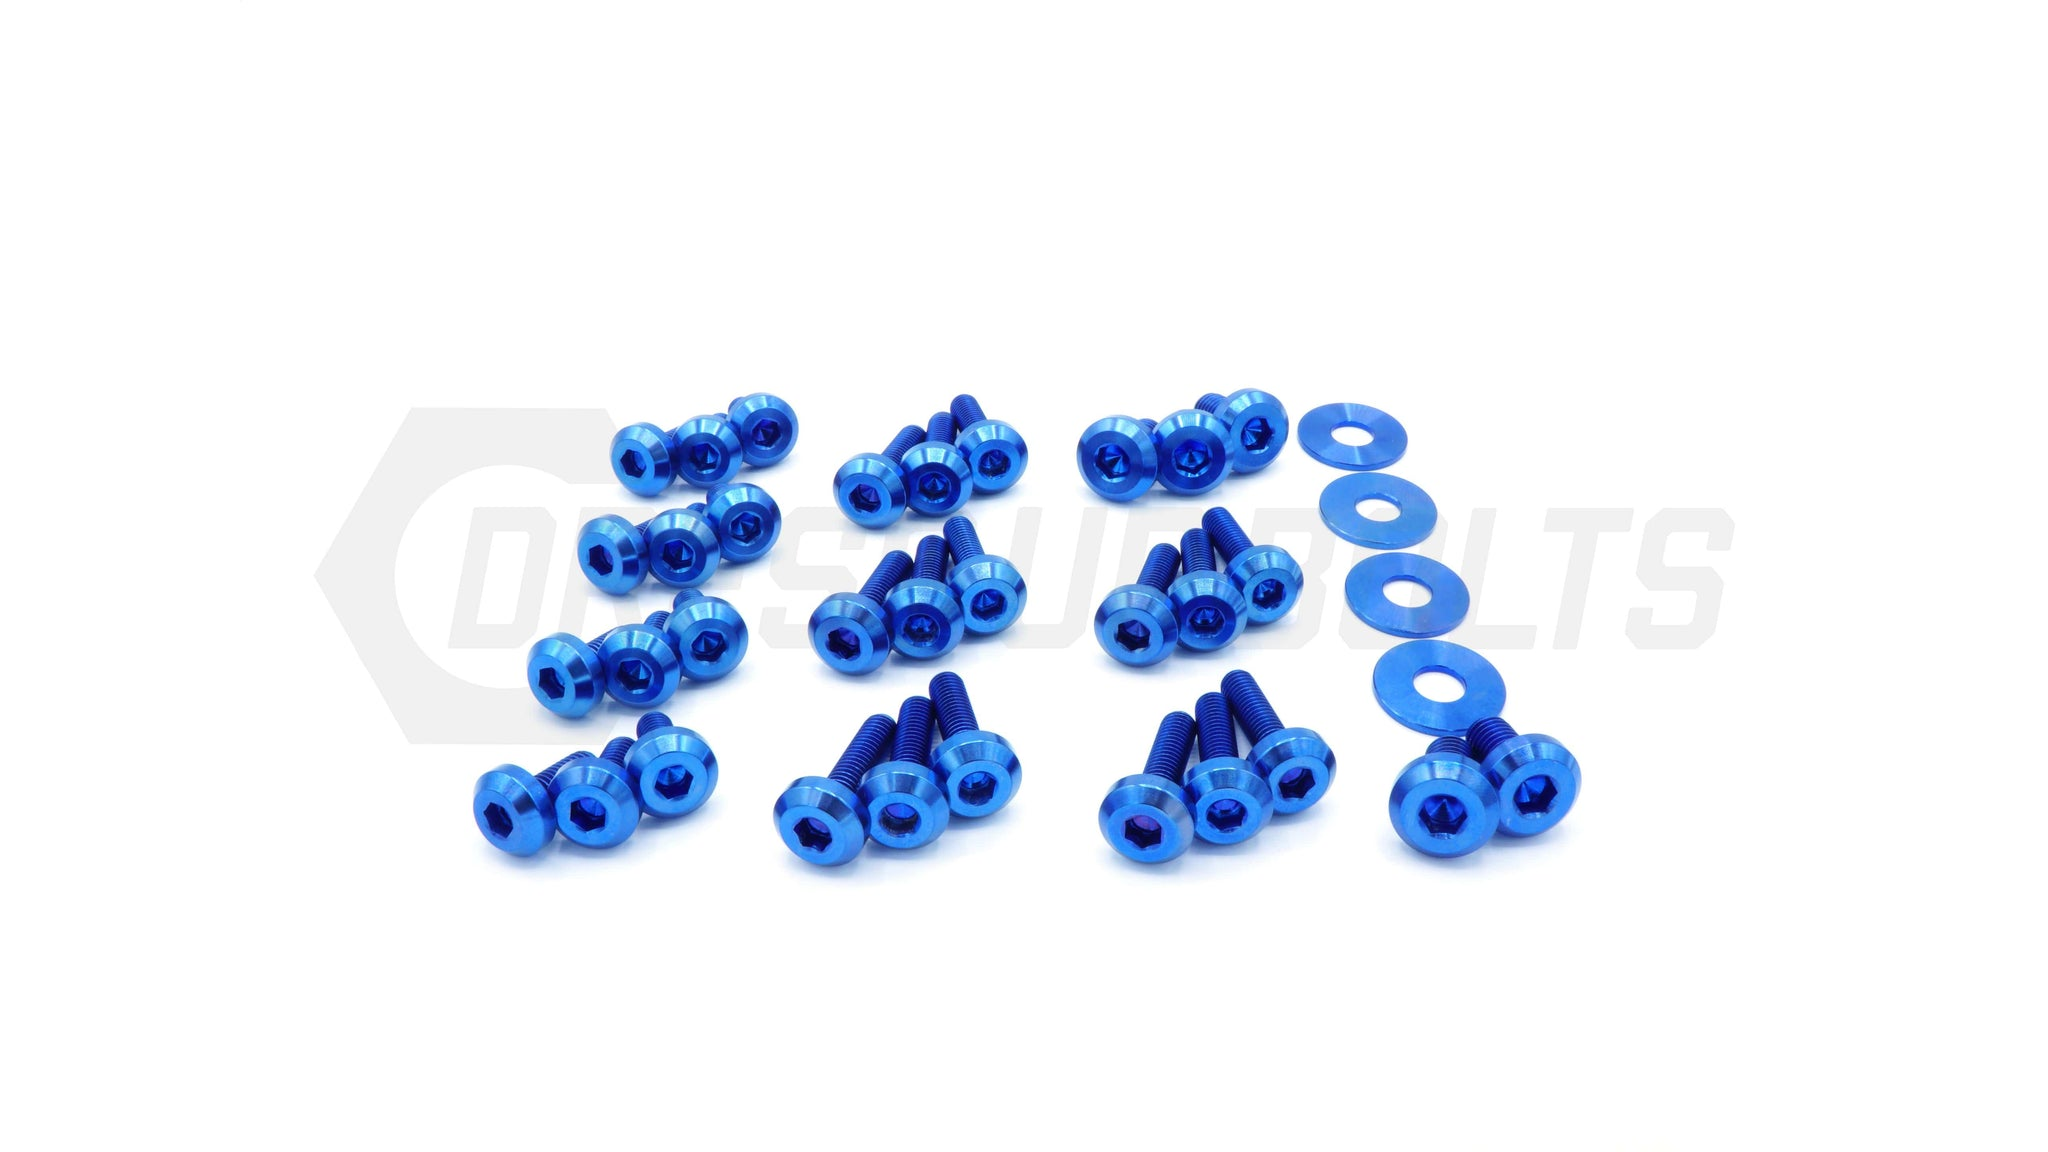 Dress Up Bolts Stage 3 Titanium Hardware Engine Kit - 4G63 Engine - DressUpBolts.com